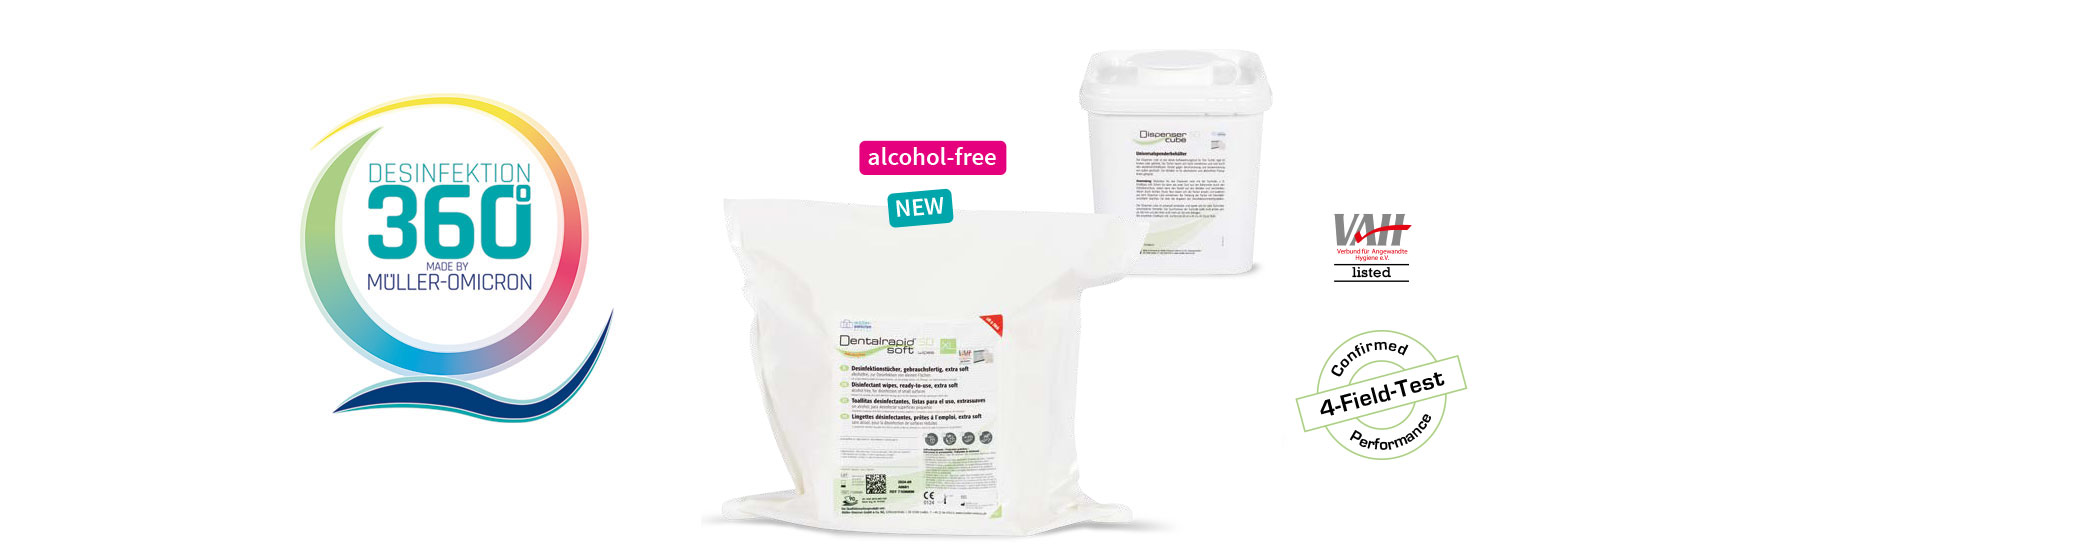 Dentalrapid soft SD wipes